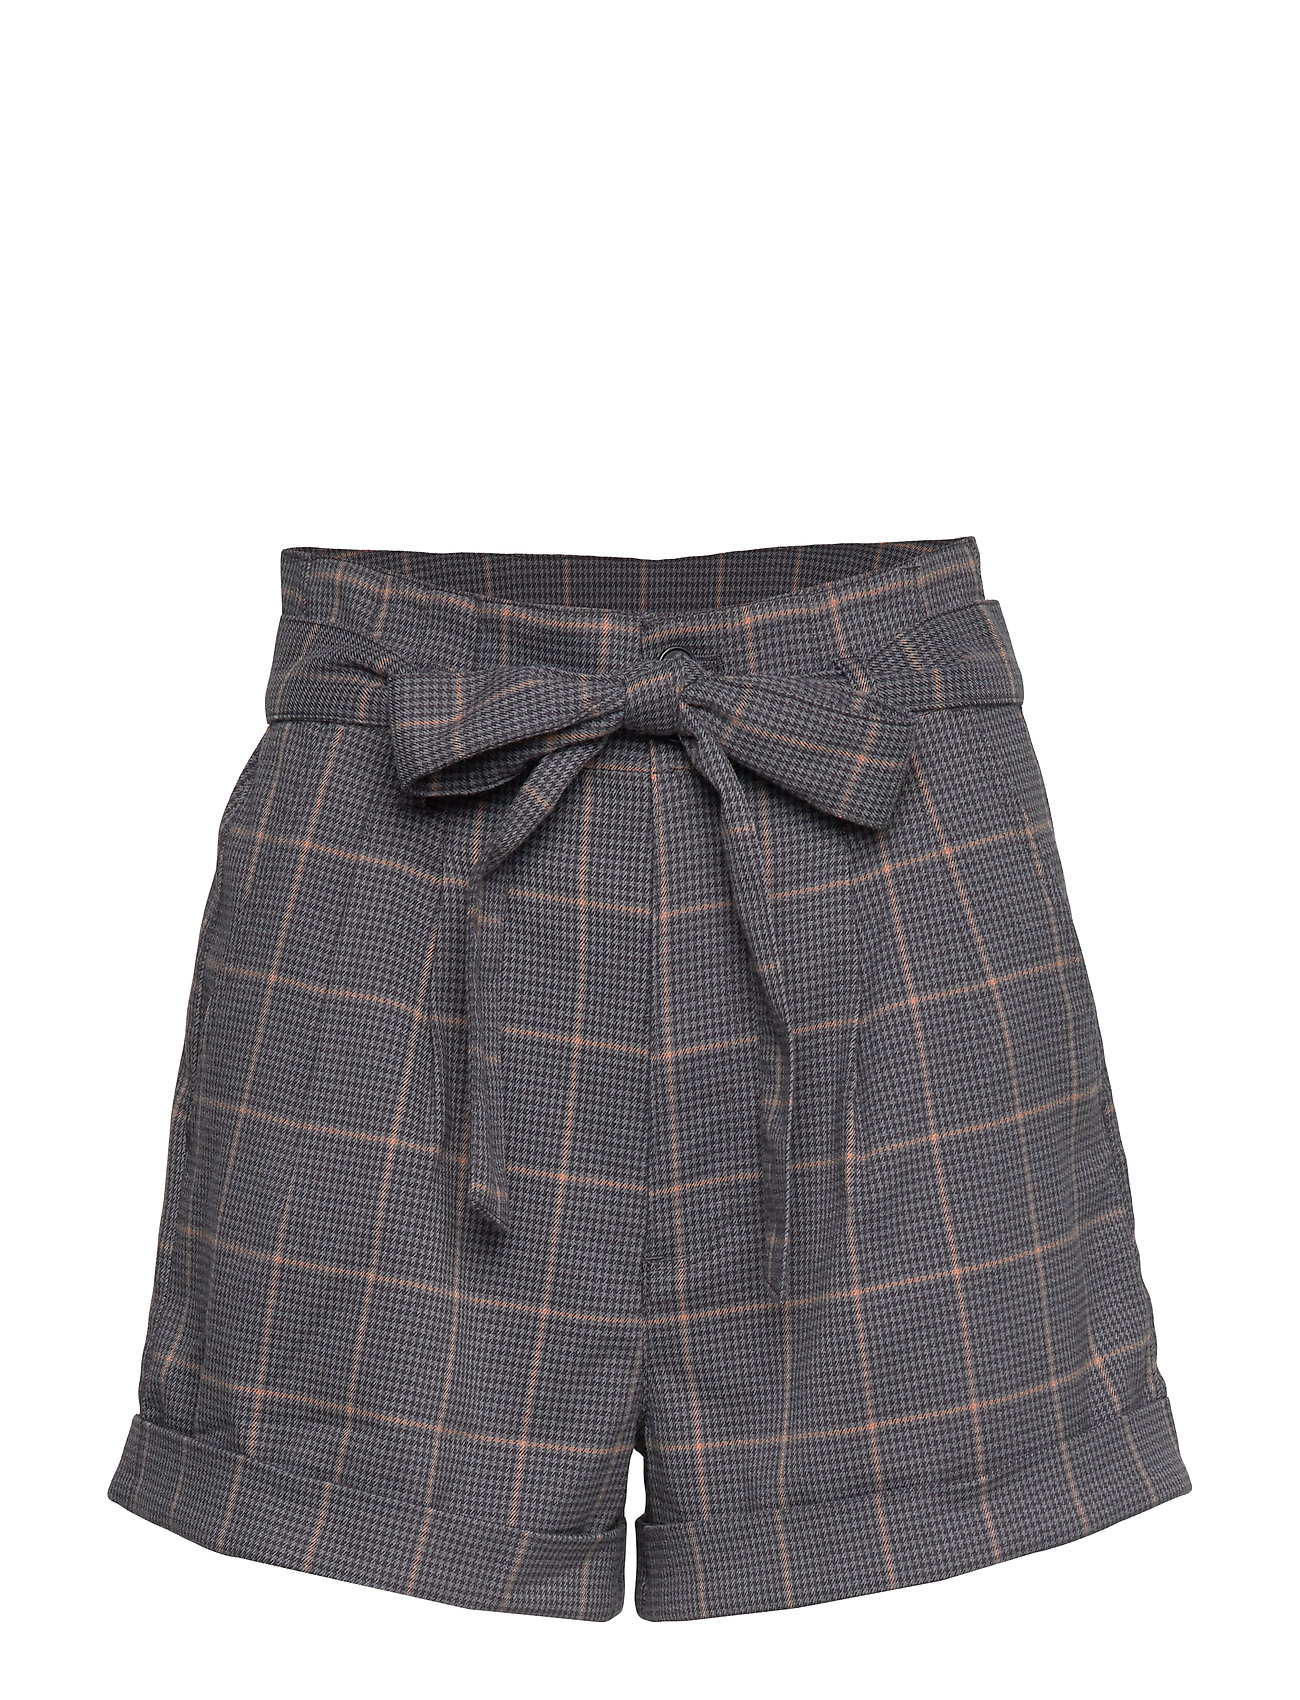 Abercrombie & Fitch Plaid Shorts - NAVY PATTERN